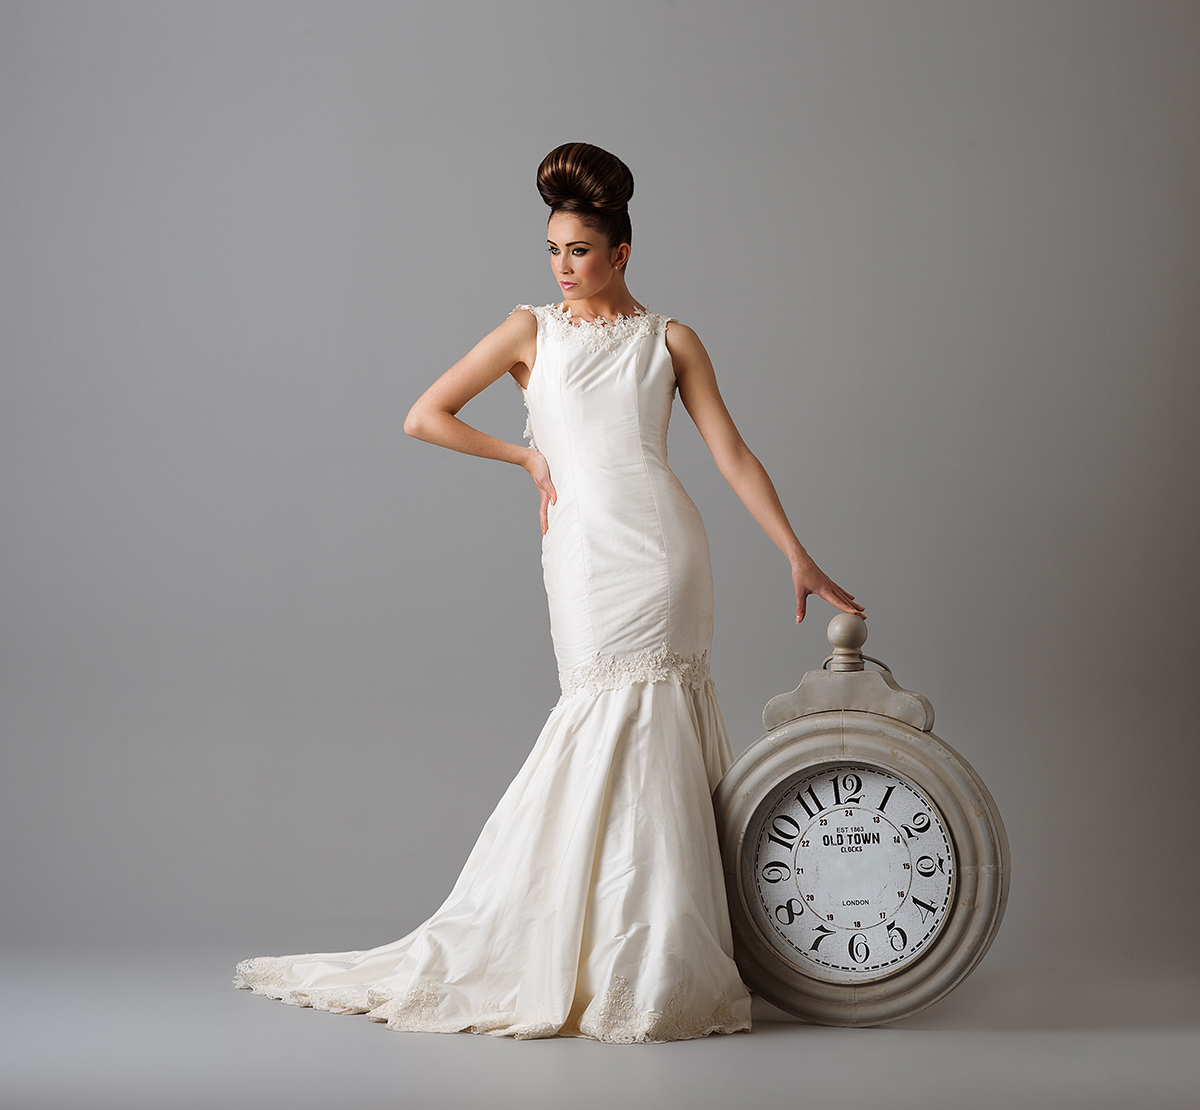 Couture Wedding Dress photoshoot for Timeless Couture by Karl Bratby Nottingham Commercial Photographer